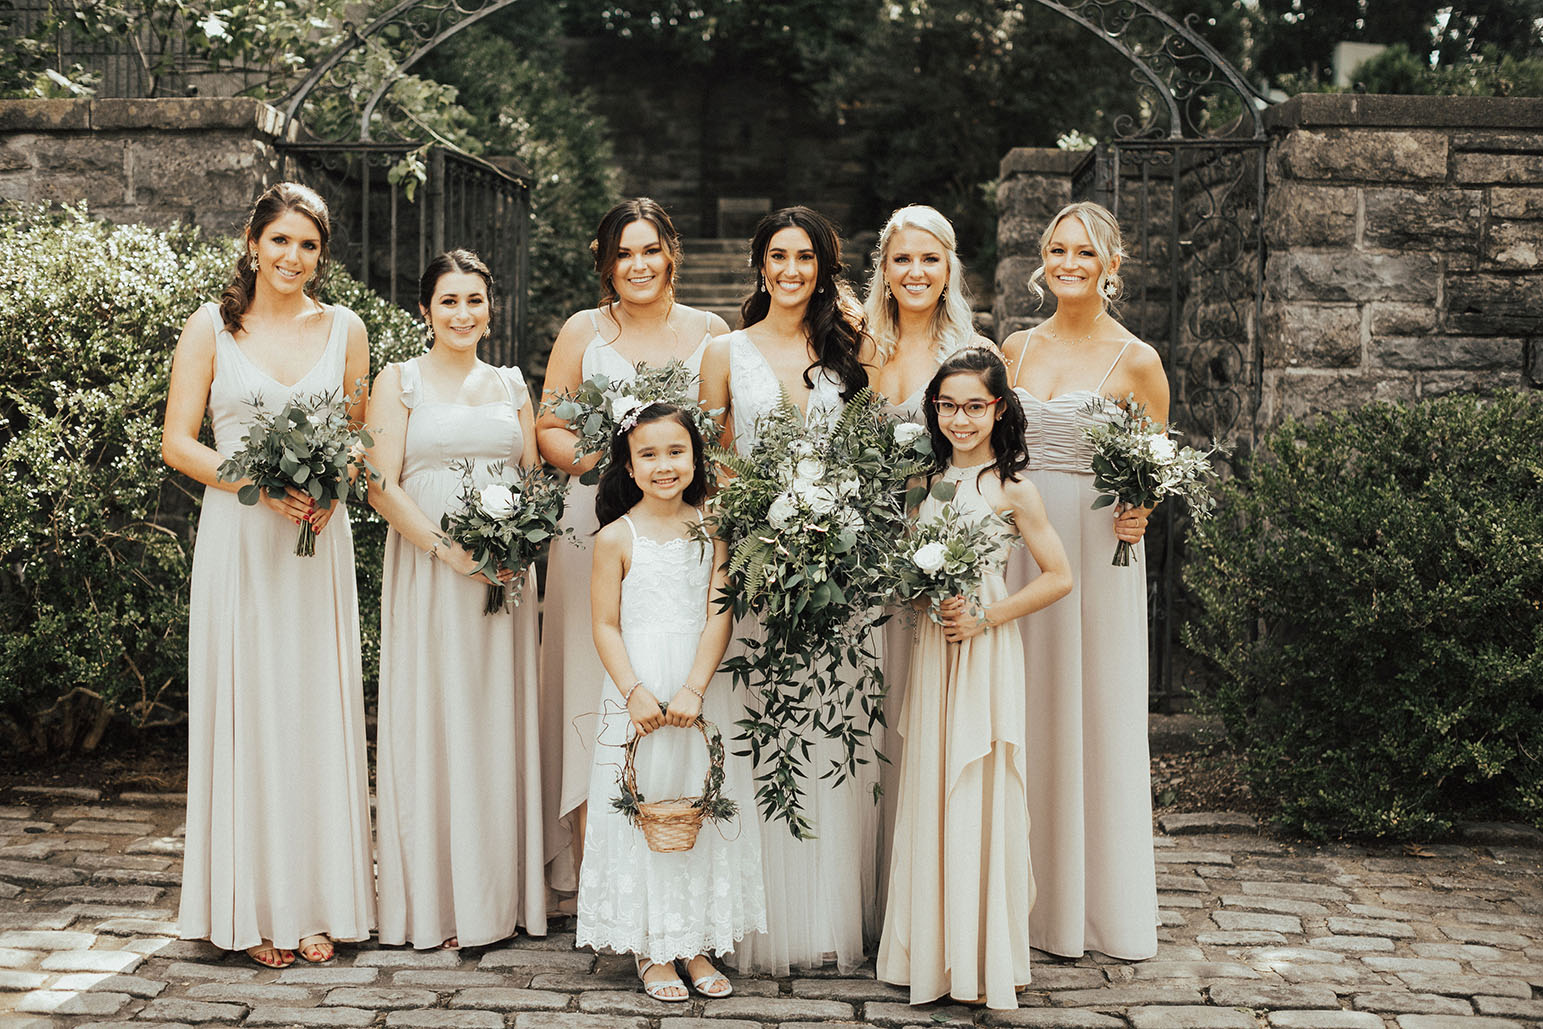 Madeline with Bridesmaids